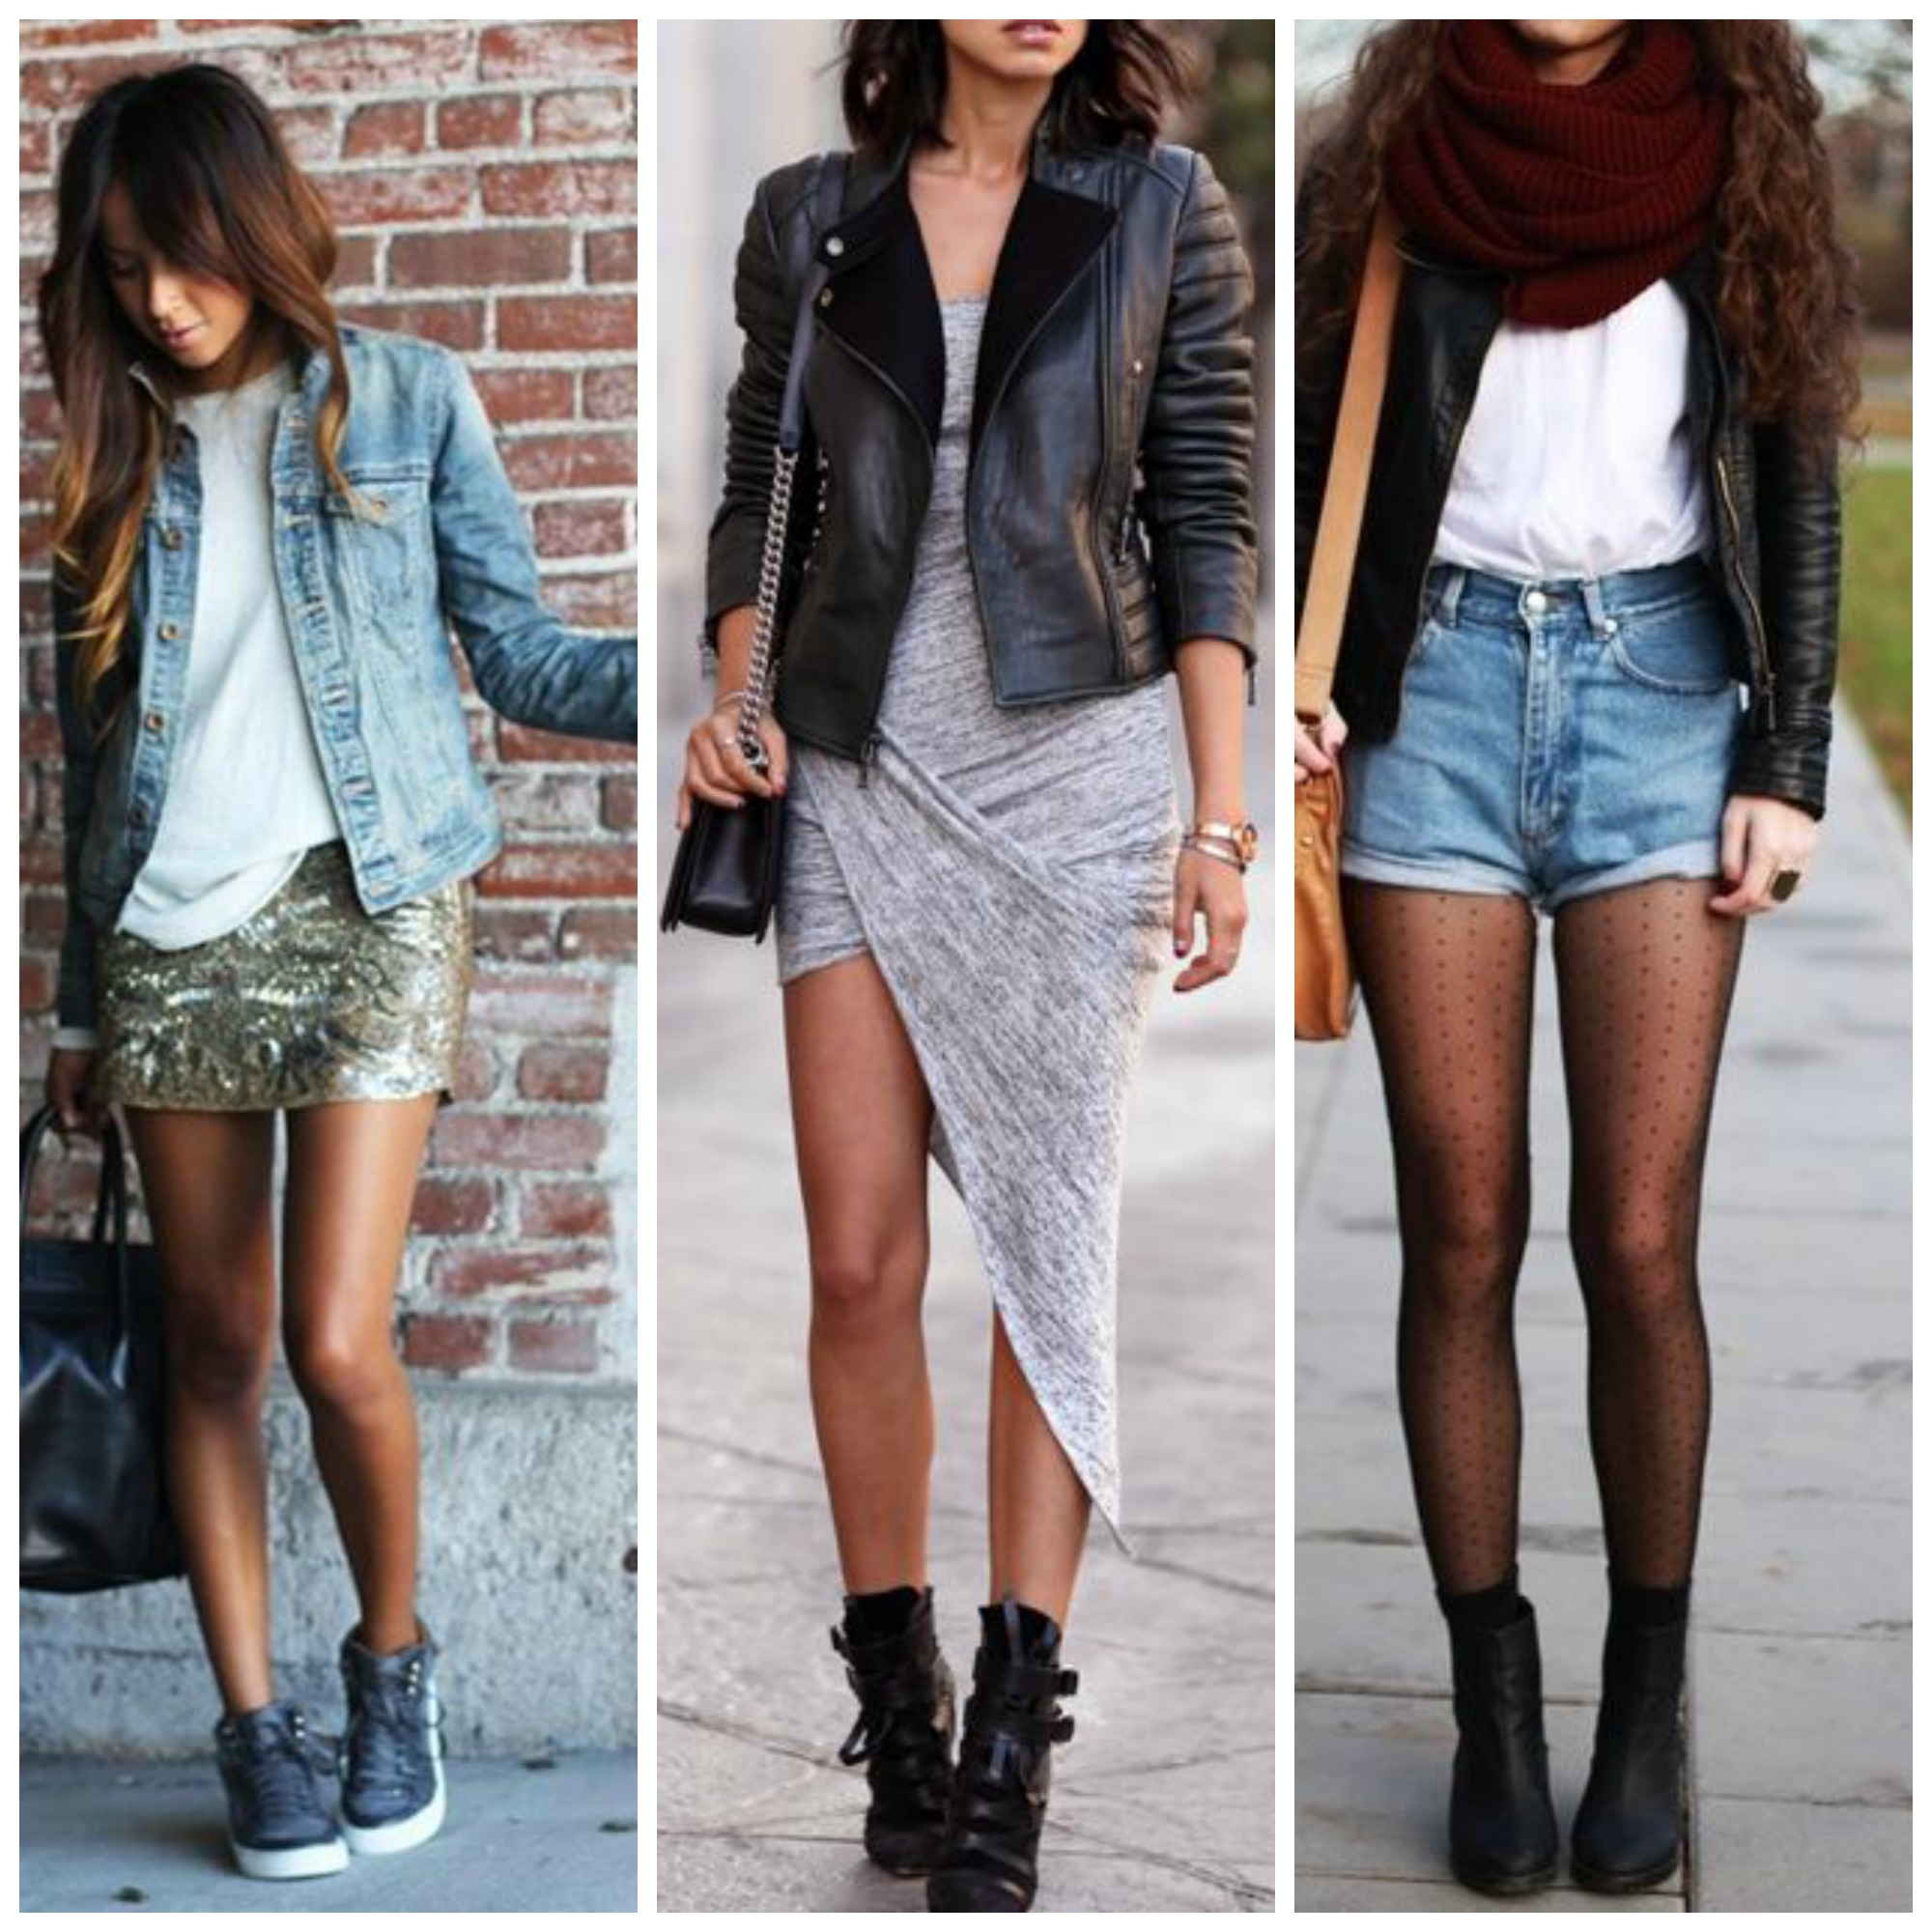 80d7efed6d How To  Wear Summer Fashion in Fall - Sincerely